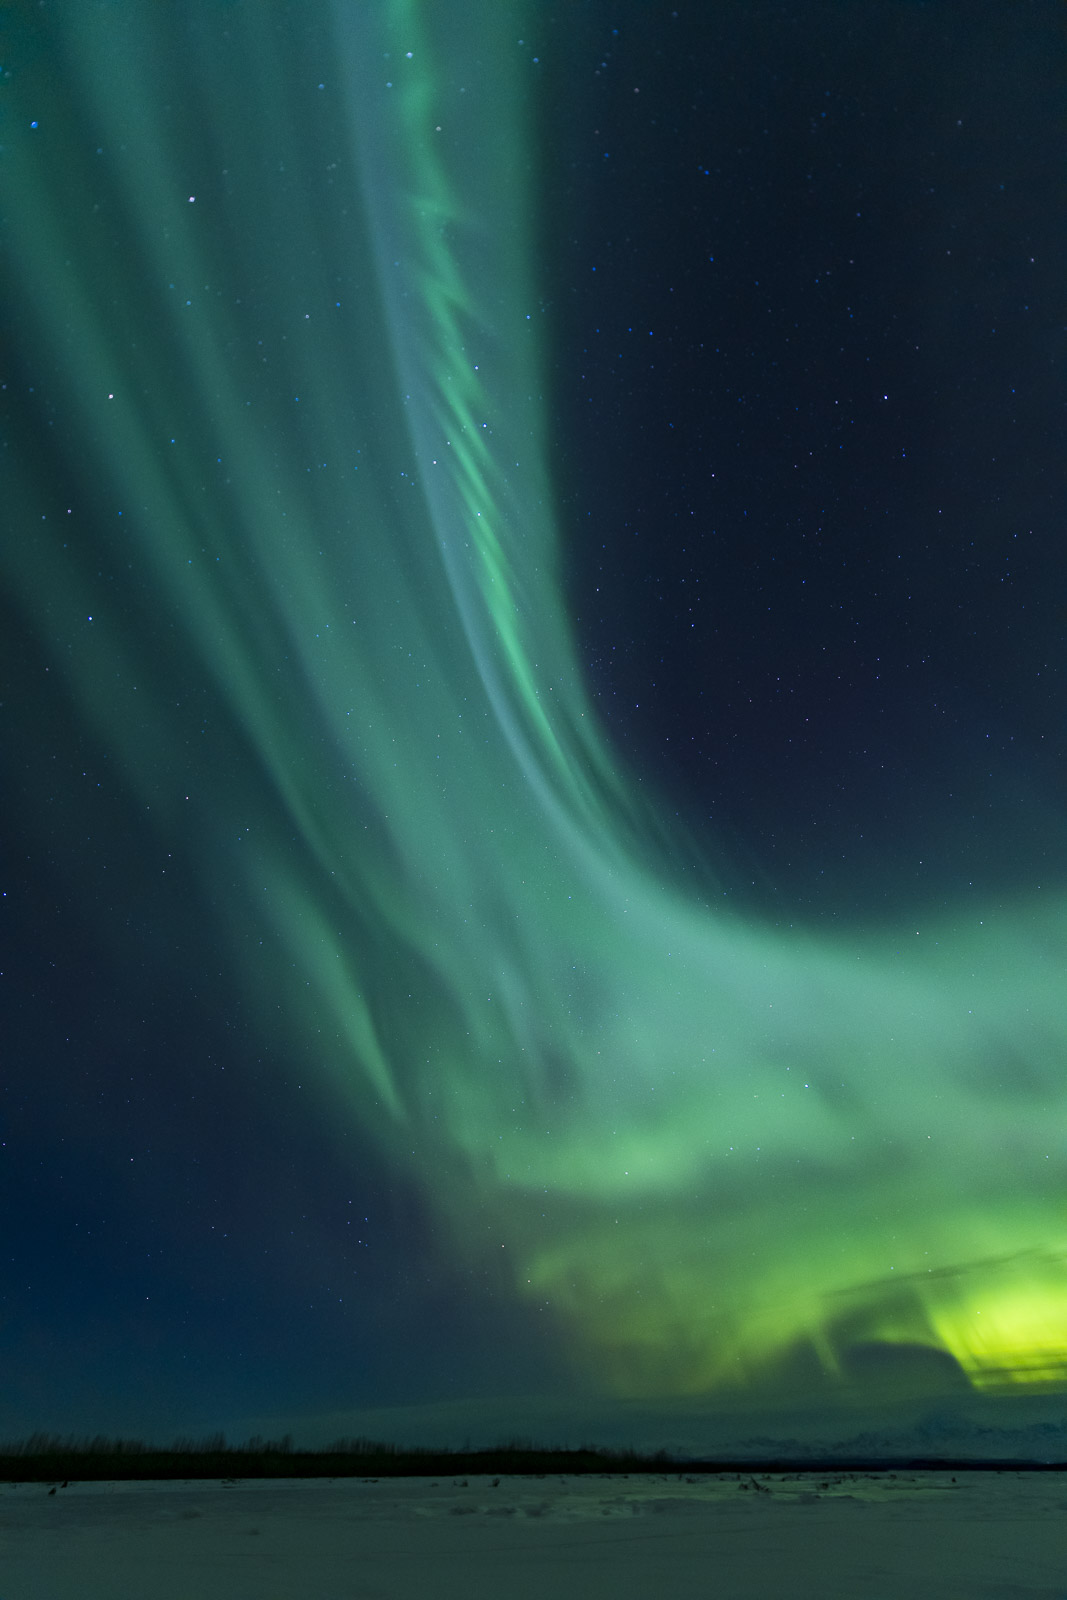 Once in a while, an aurora borealis display gets so tall that you need to fill most of the frame with it. I always want to have...